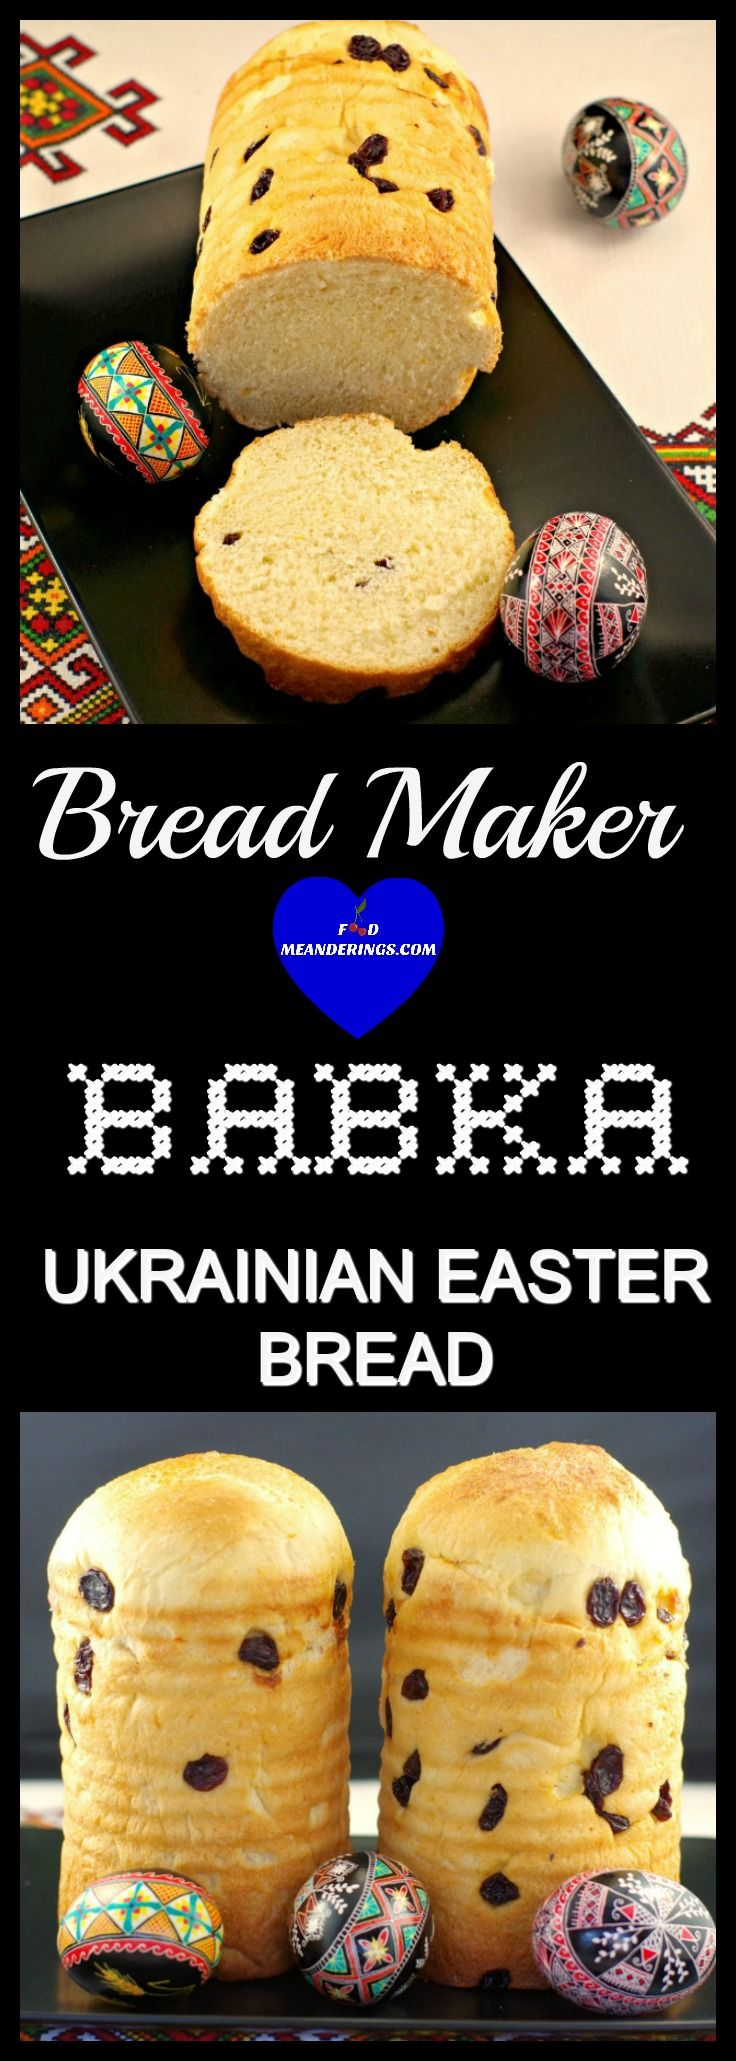 Babka, a light, buttery, slightly sweet, delicate cake-like type of Ukrainian Easter bread, is made in your bread maker! A gluten free option is included!